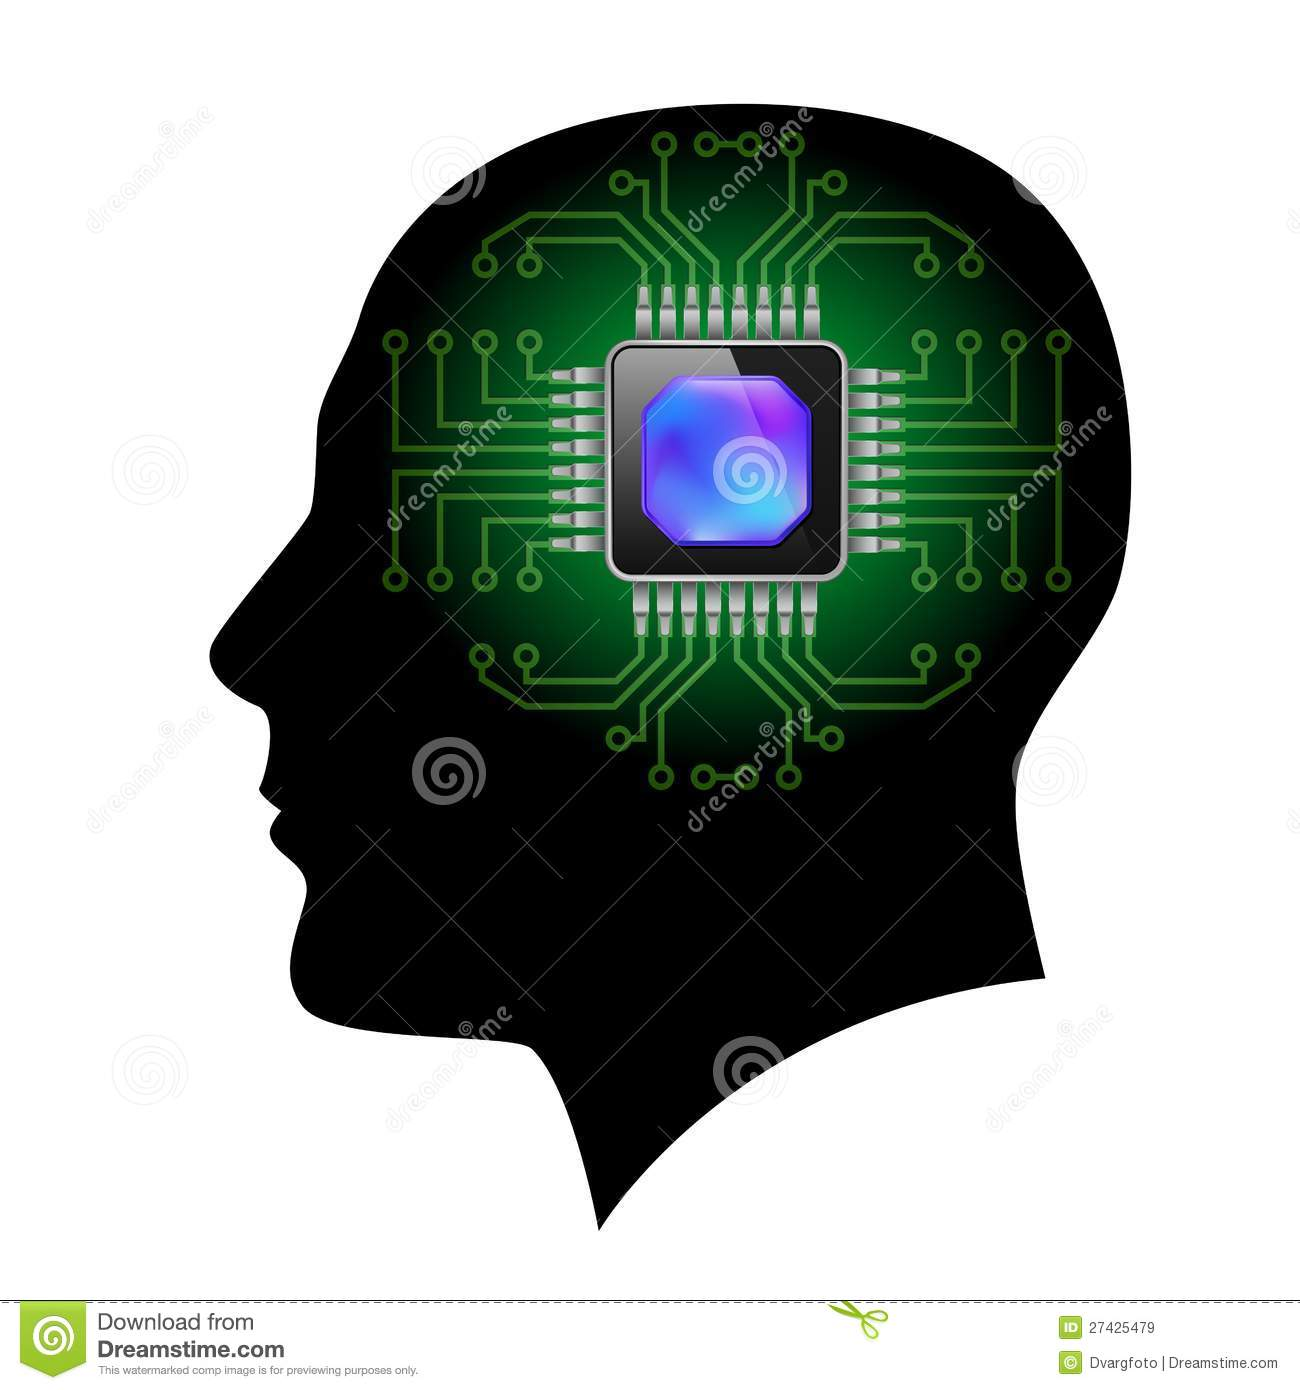 Printed Circuit Board Royalty Free Stock Photos Image 28246598 Images